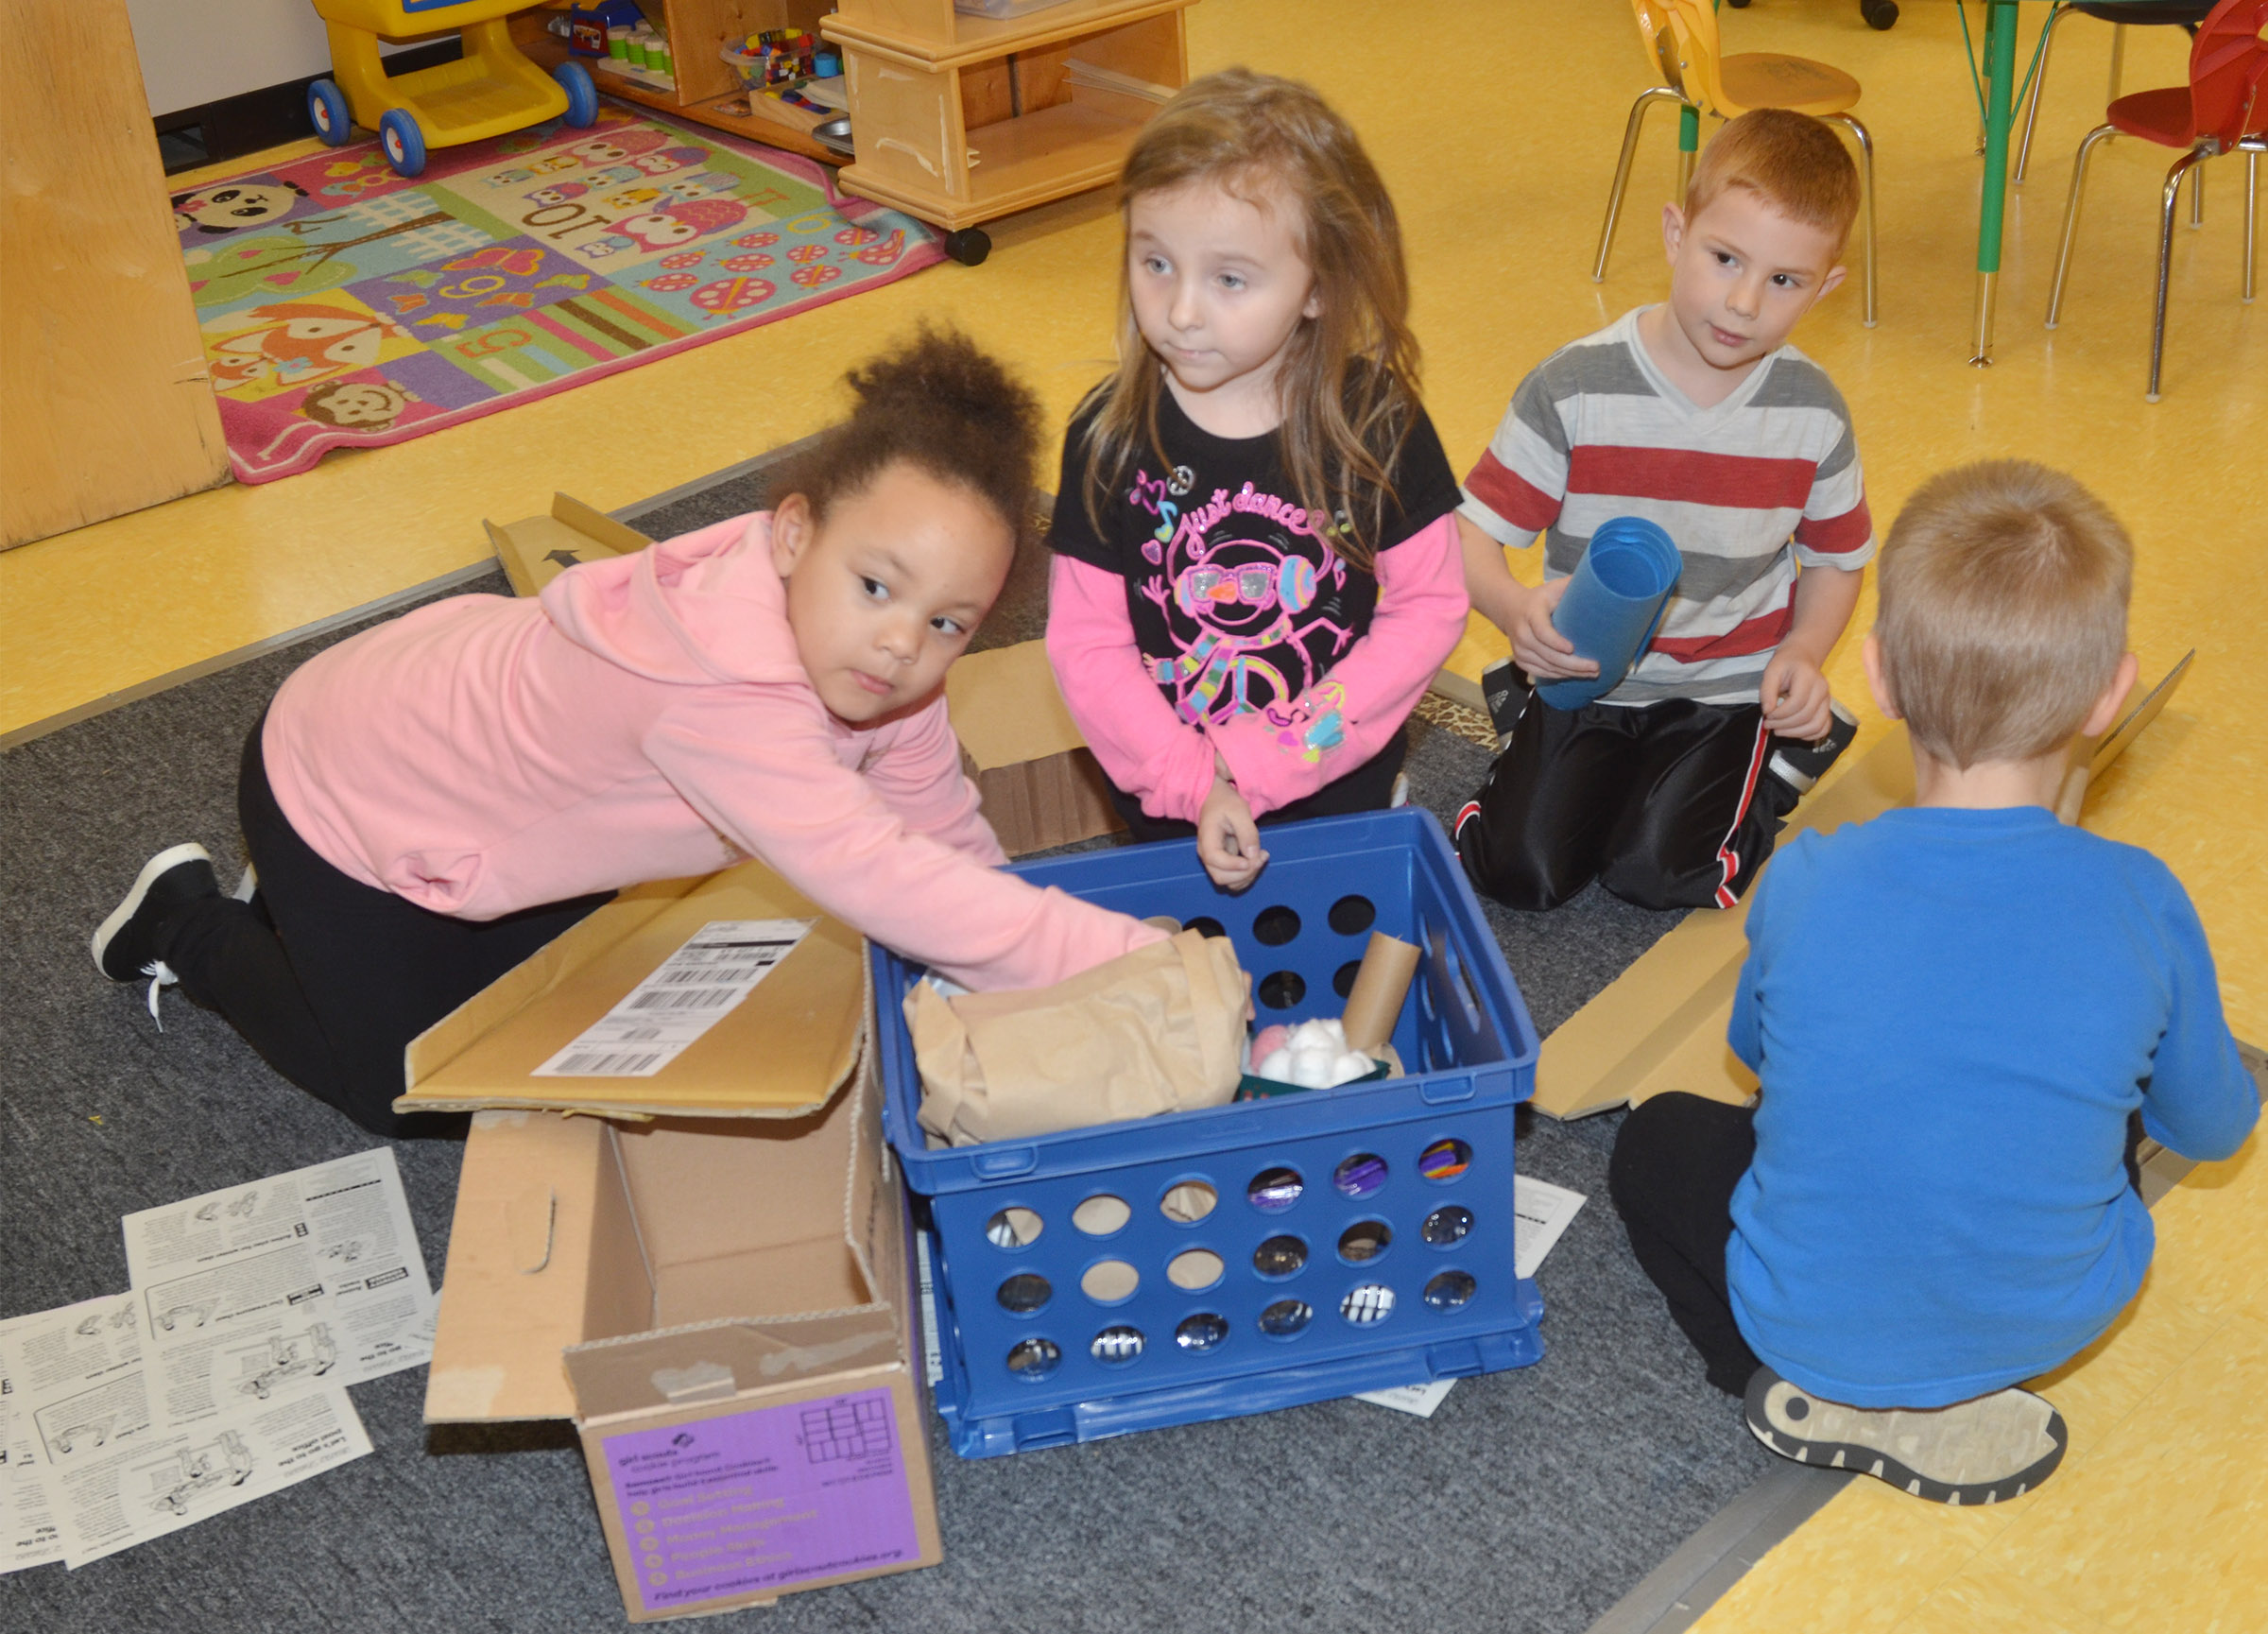 CES preschool students, from left, Lillian Merriweather, Tabitha Leggett, Kennon Dotson and Jacob Parrish build with everyday objects.